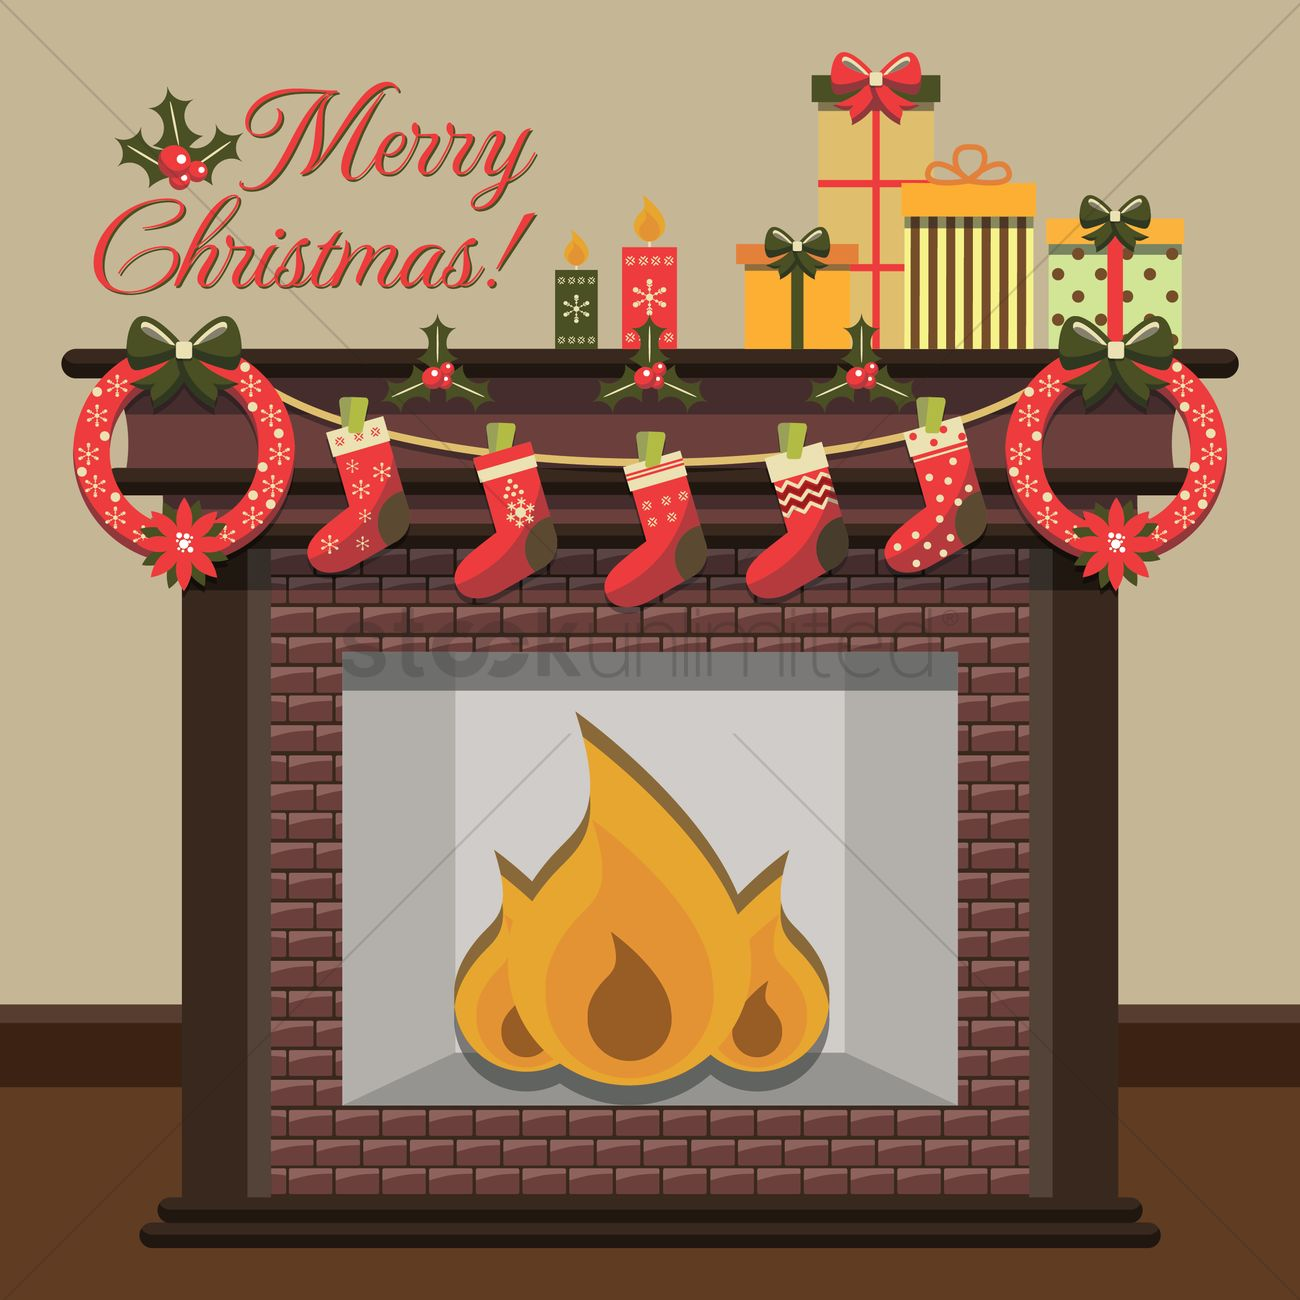 Merry christmas card design Vector Image - 1498567 | StockUnlimited